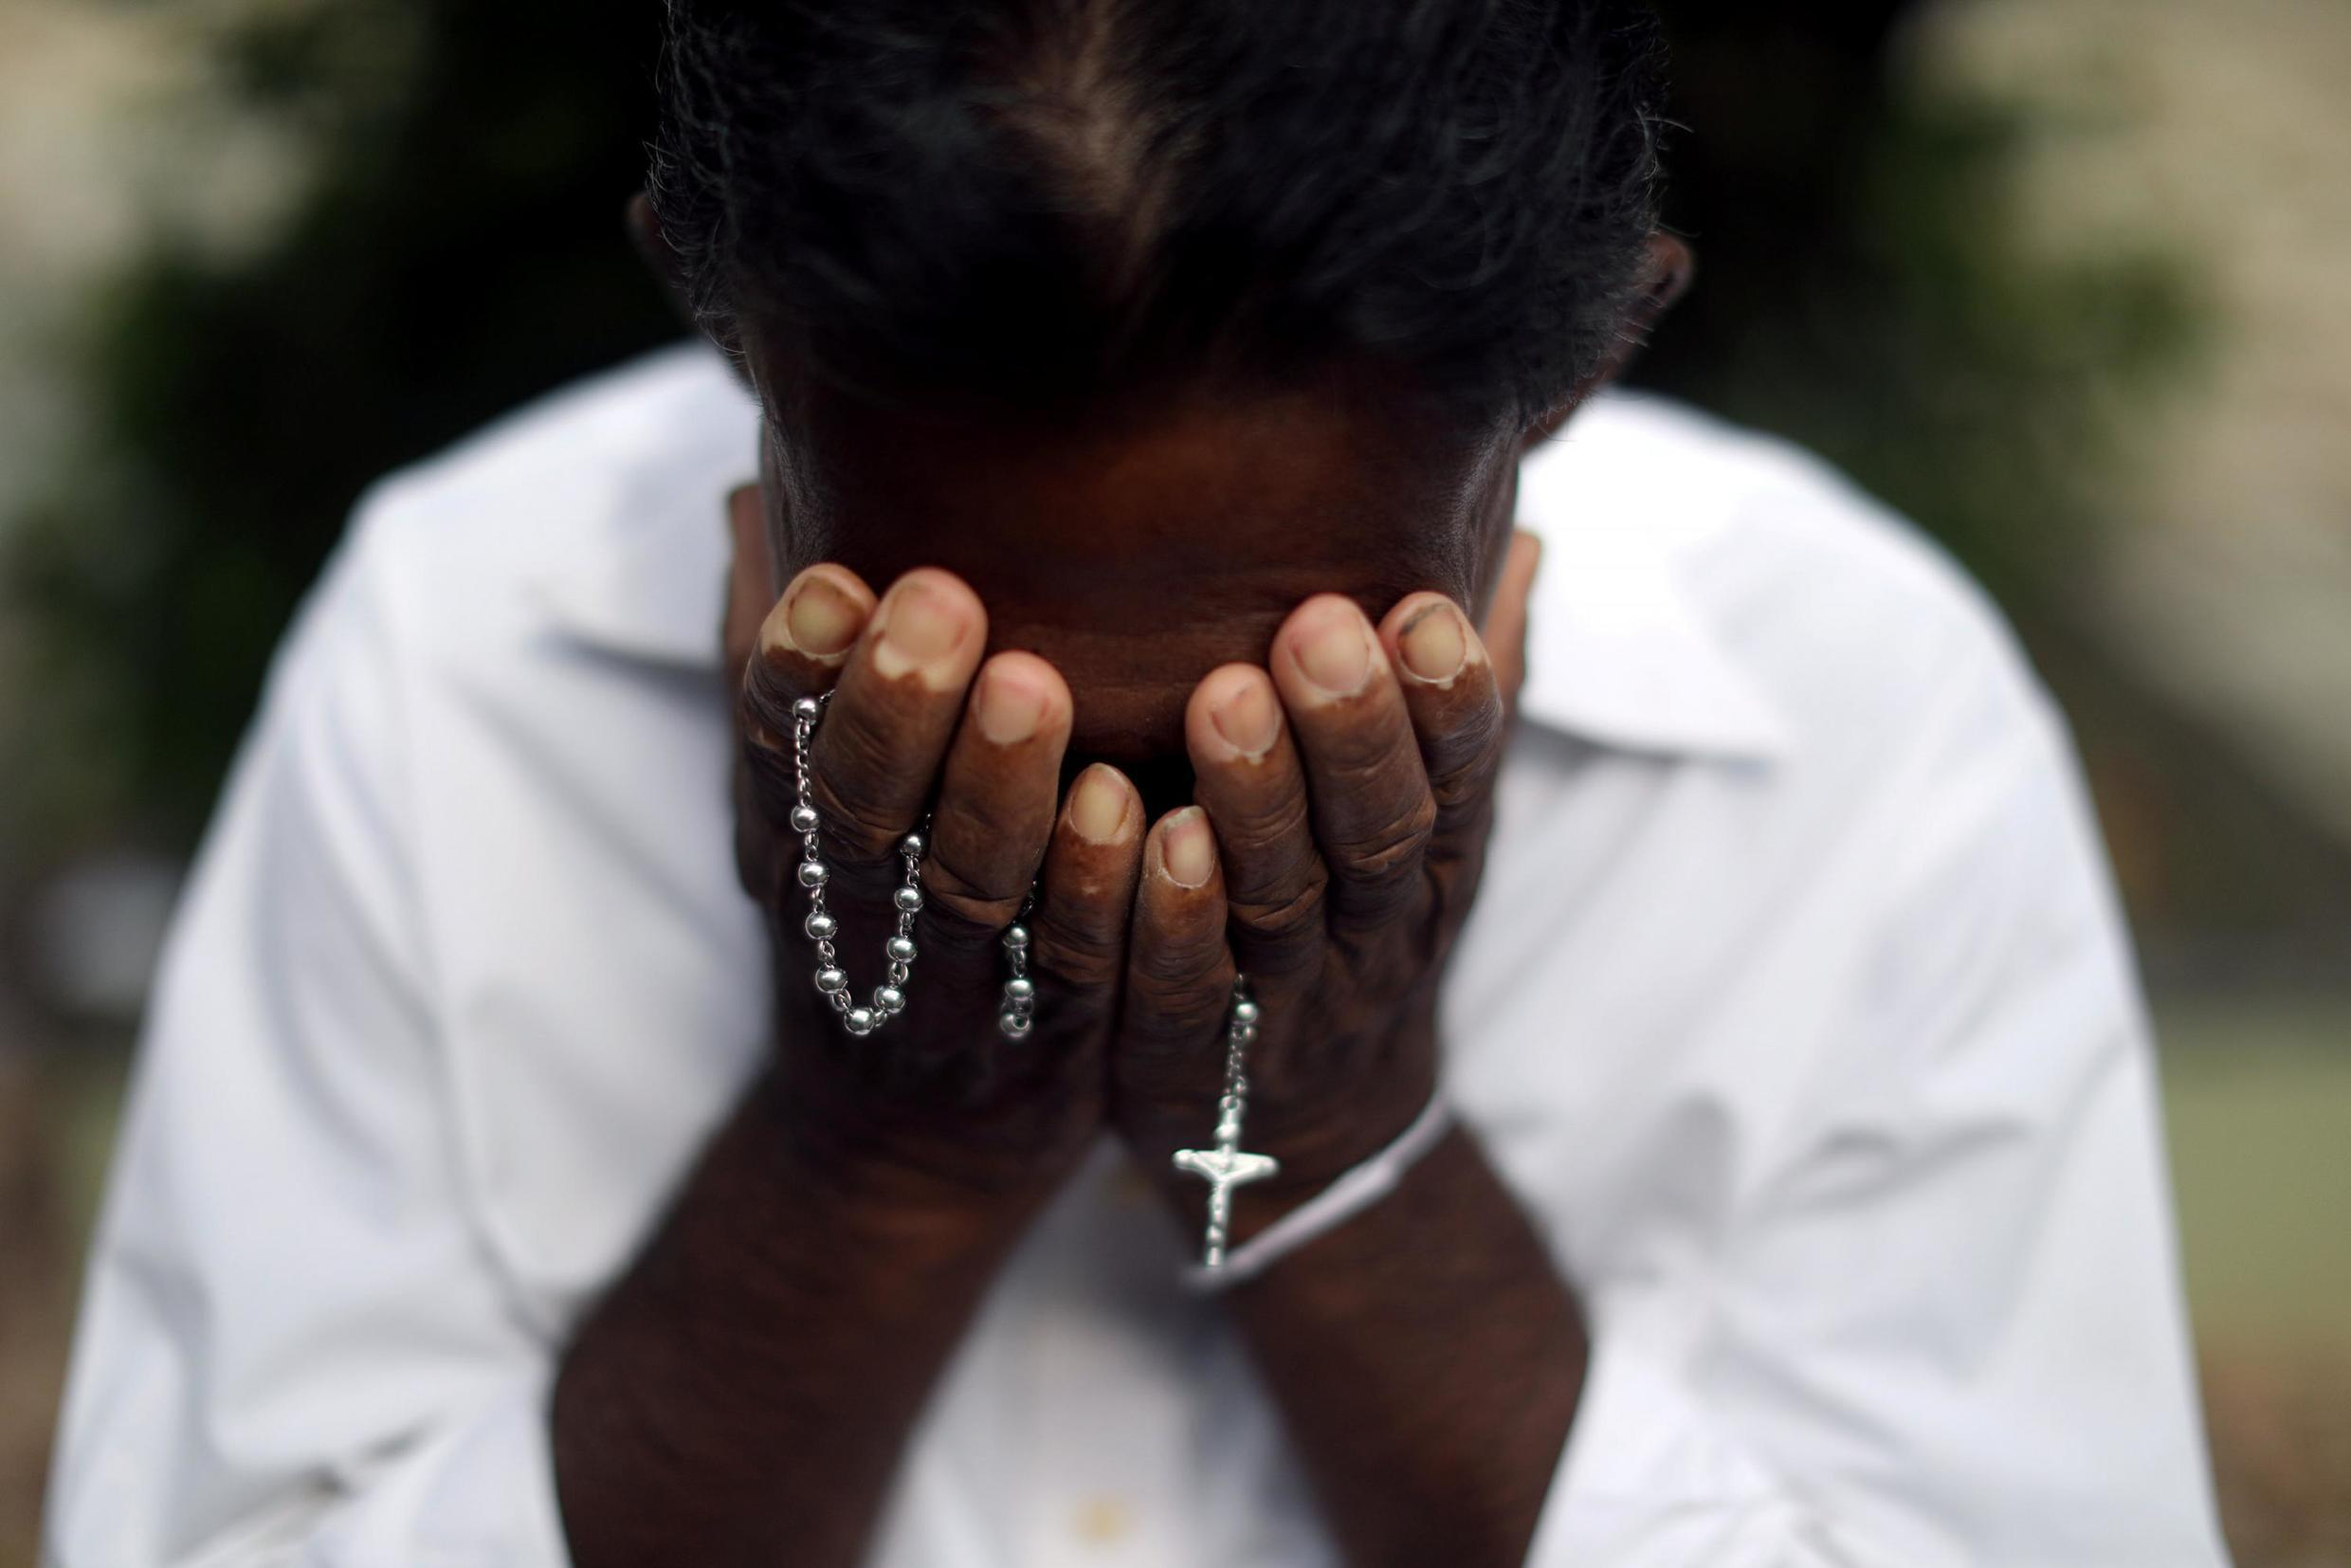 A person mourns at a grave of a victim, two days after a string of suicide bomb attacks on churches and luxury hotels across the island on Easter Sunday, at Sellakanda Catholic cemetery in Negombo, Sri Lanka April 23, 2019.